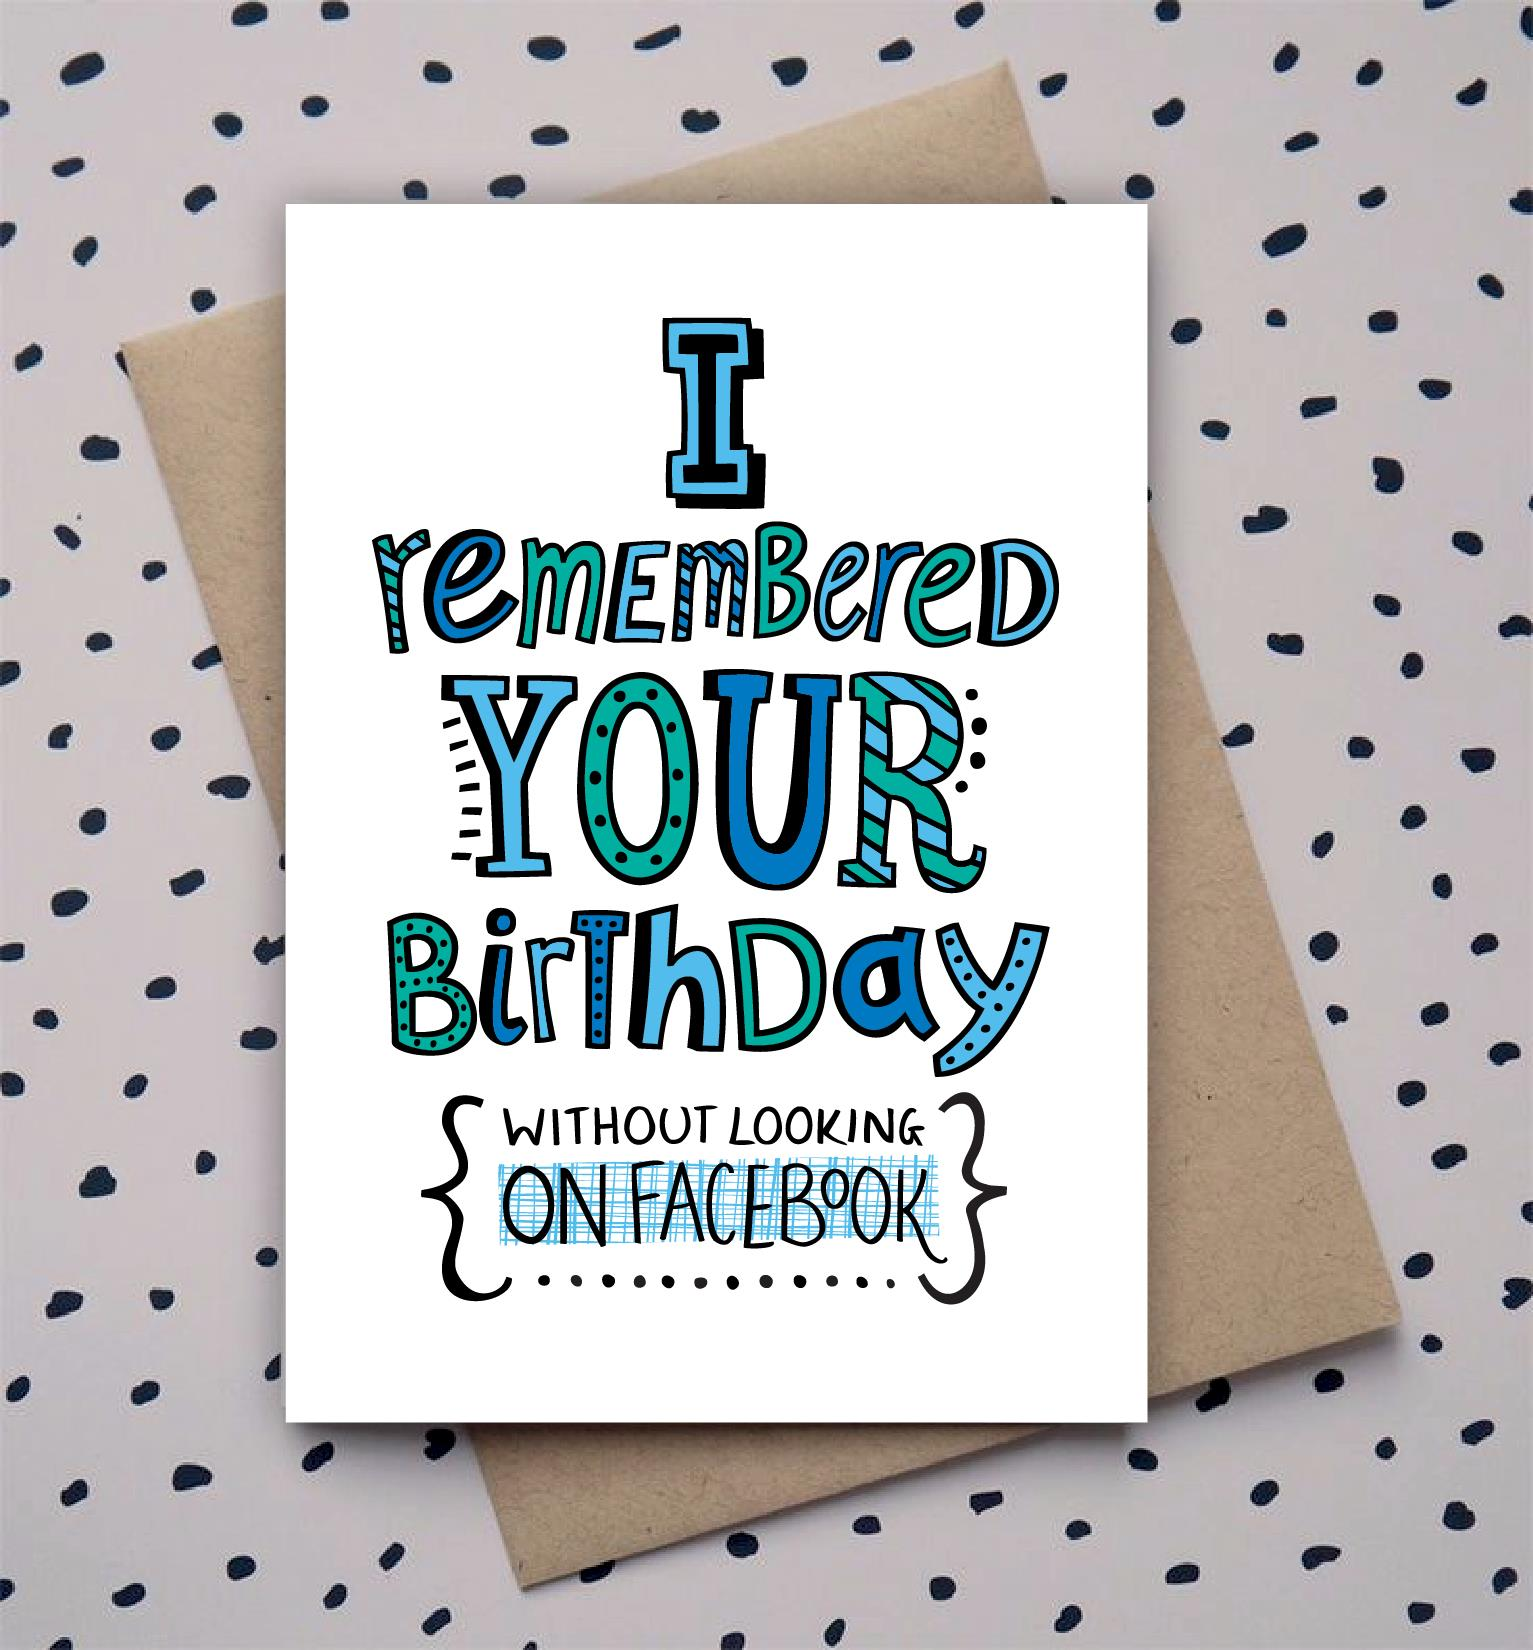 birthday drawing ideas ; Drawing-Birthday-Card-Ideas-is-one-of-the-best-idea-for-you-to-make-your-own-birthday-Card-design-1